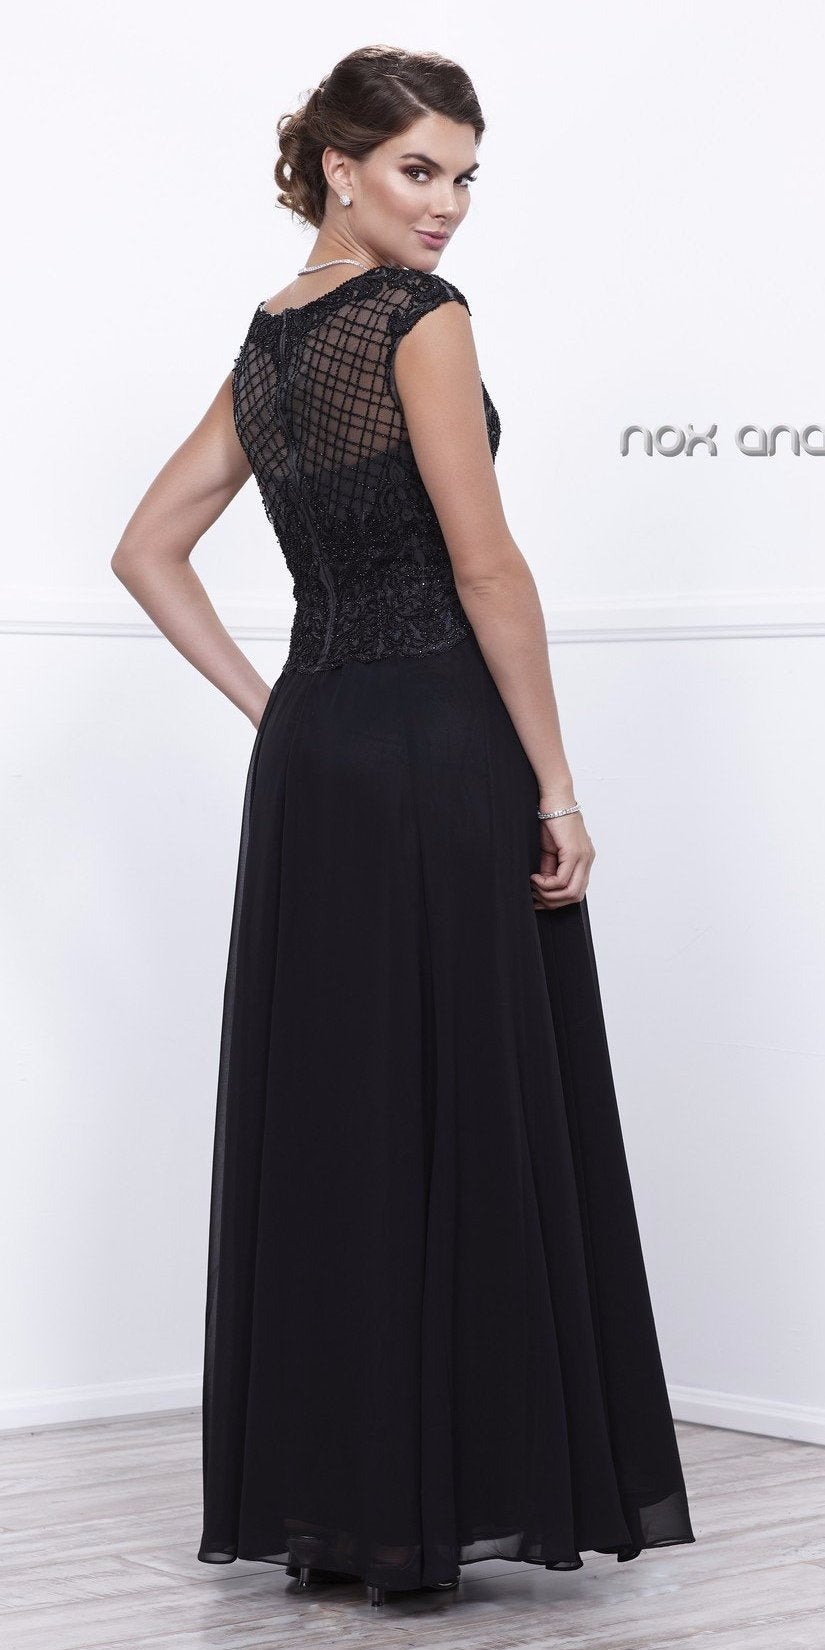 Cap Sleeves Embellished Bodice A-Line Formal Dress Black with Jacket Back View